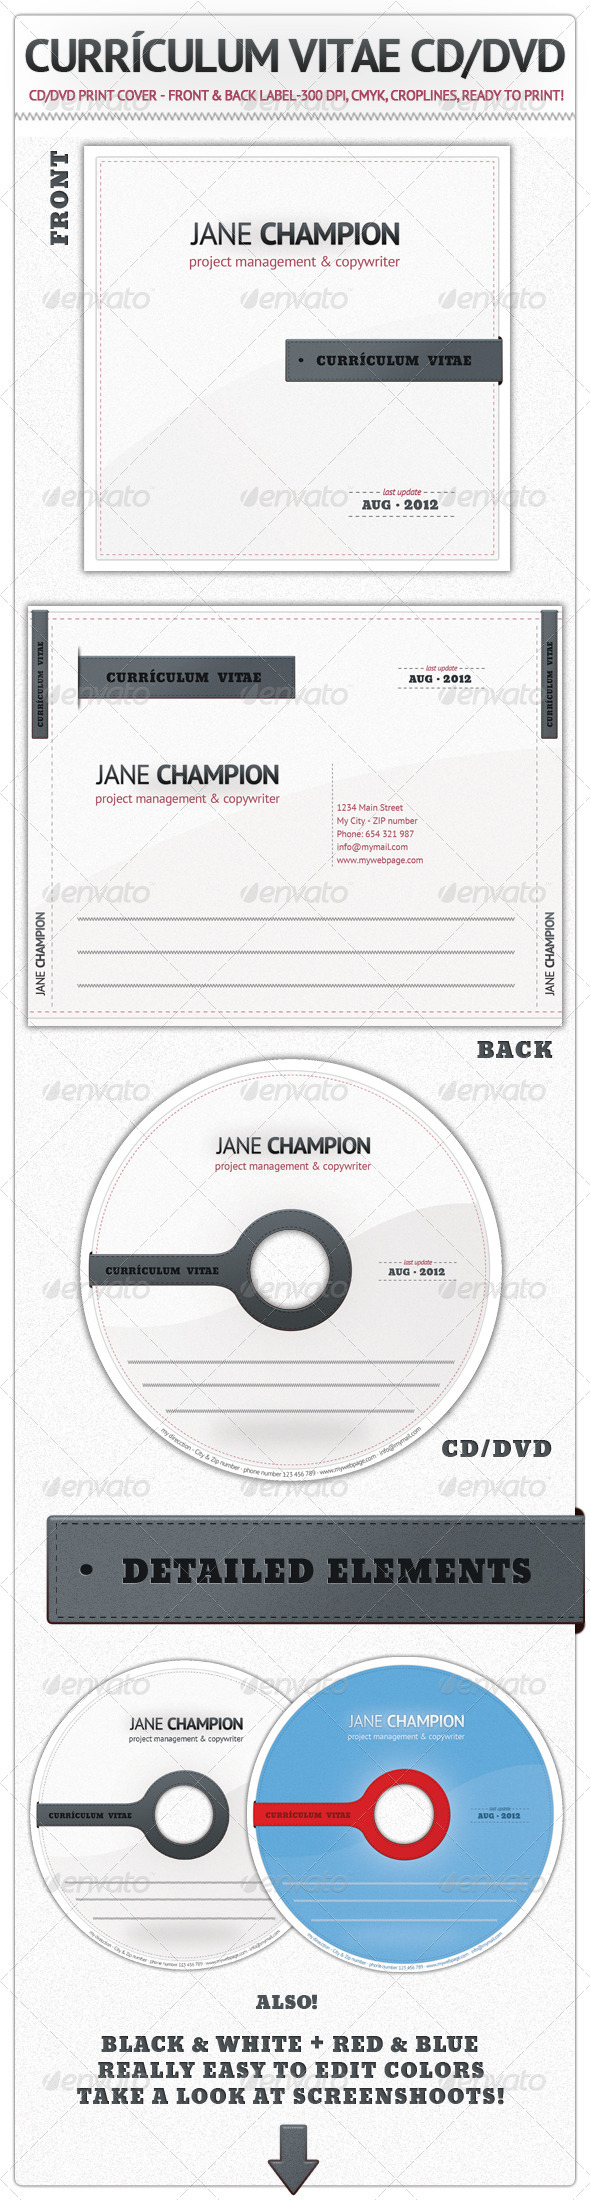 GraphicRiver Curriculum Vitae CD DVD 2833291